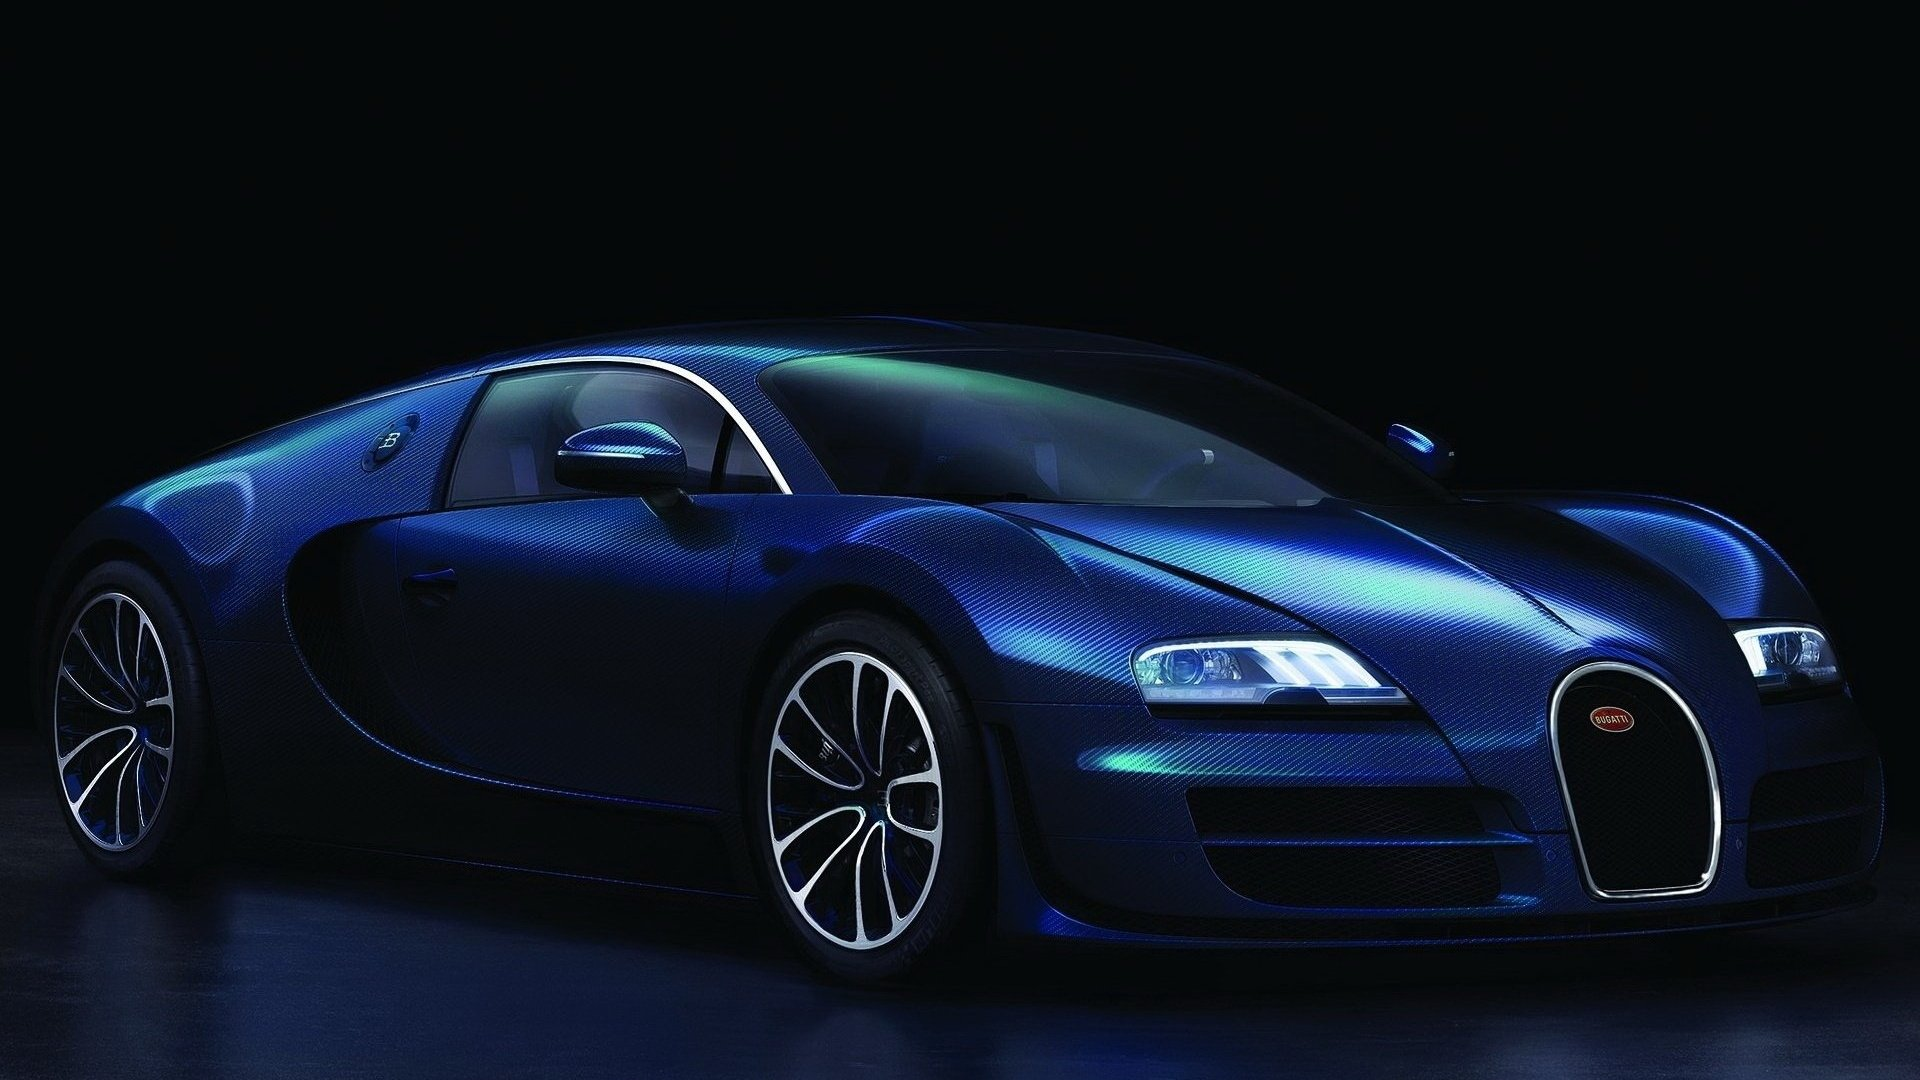 Bugatti Veyron Wallpapers 1920x1080